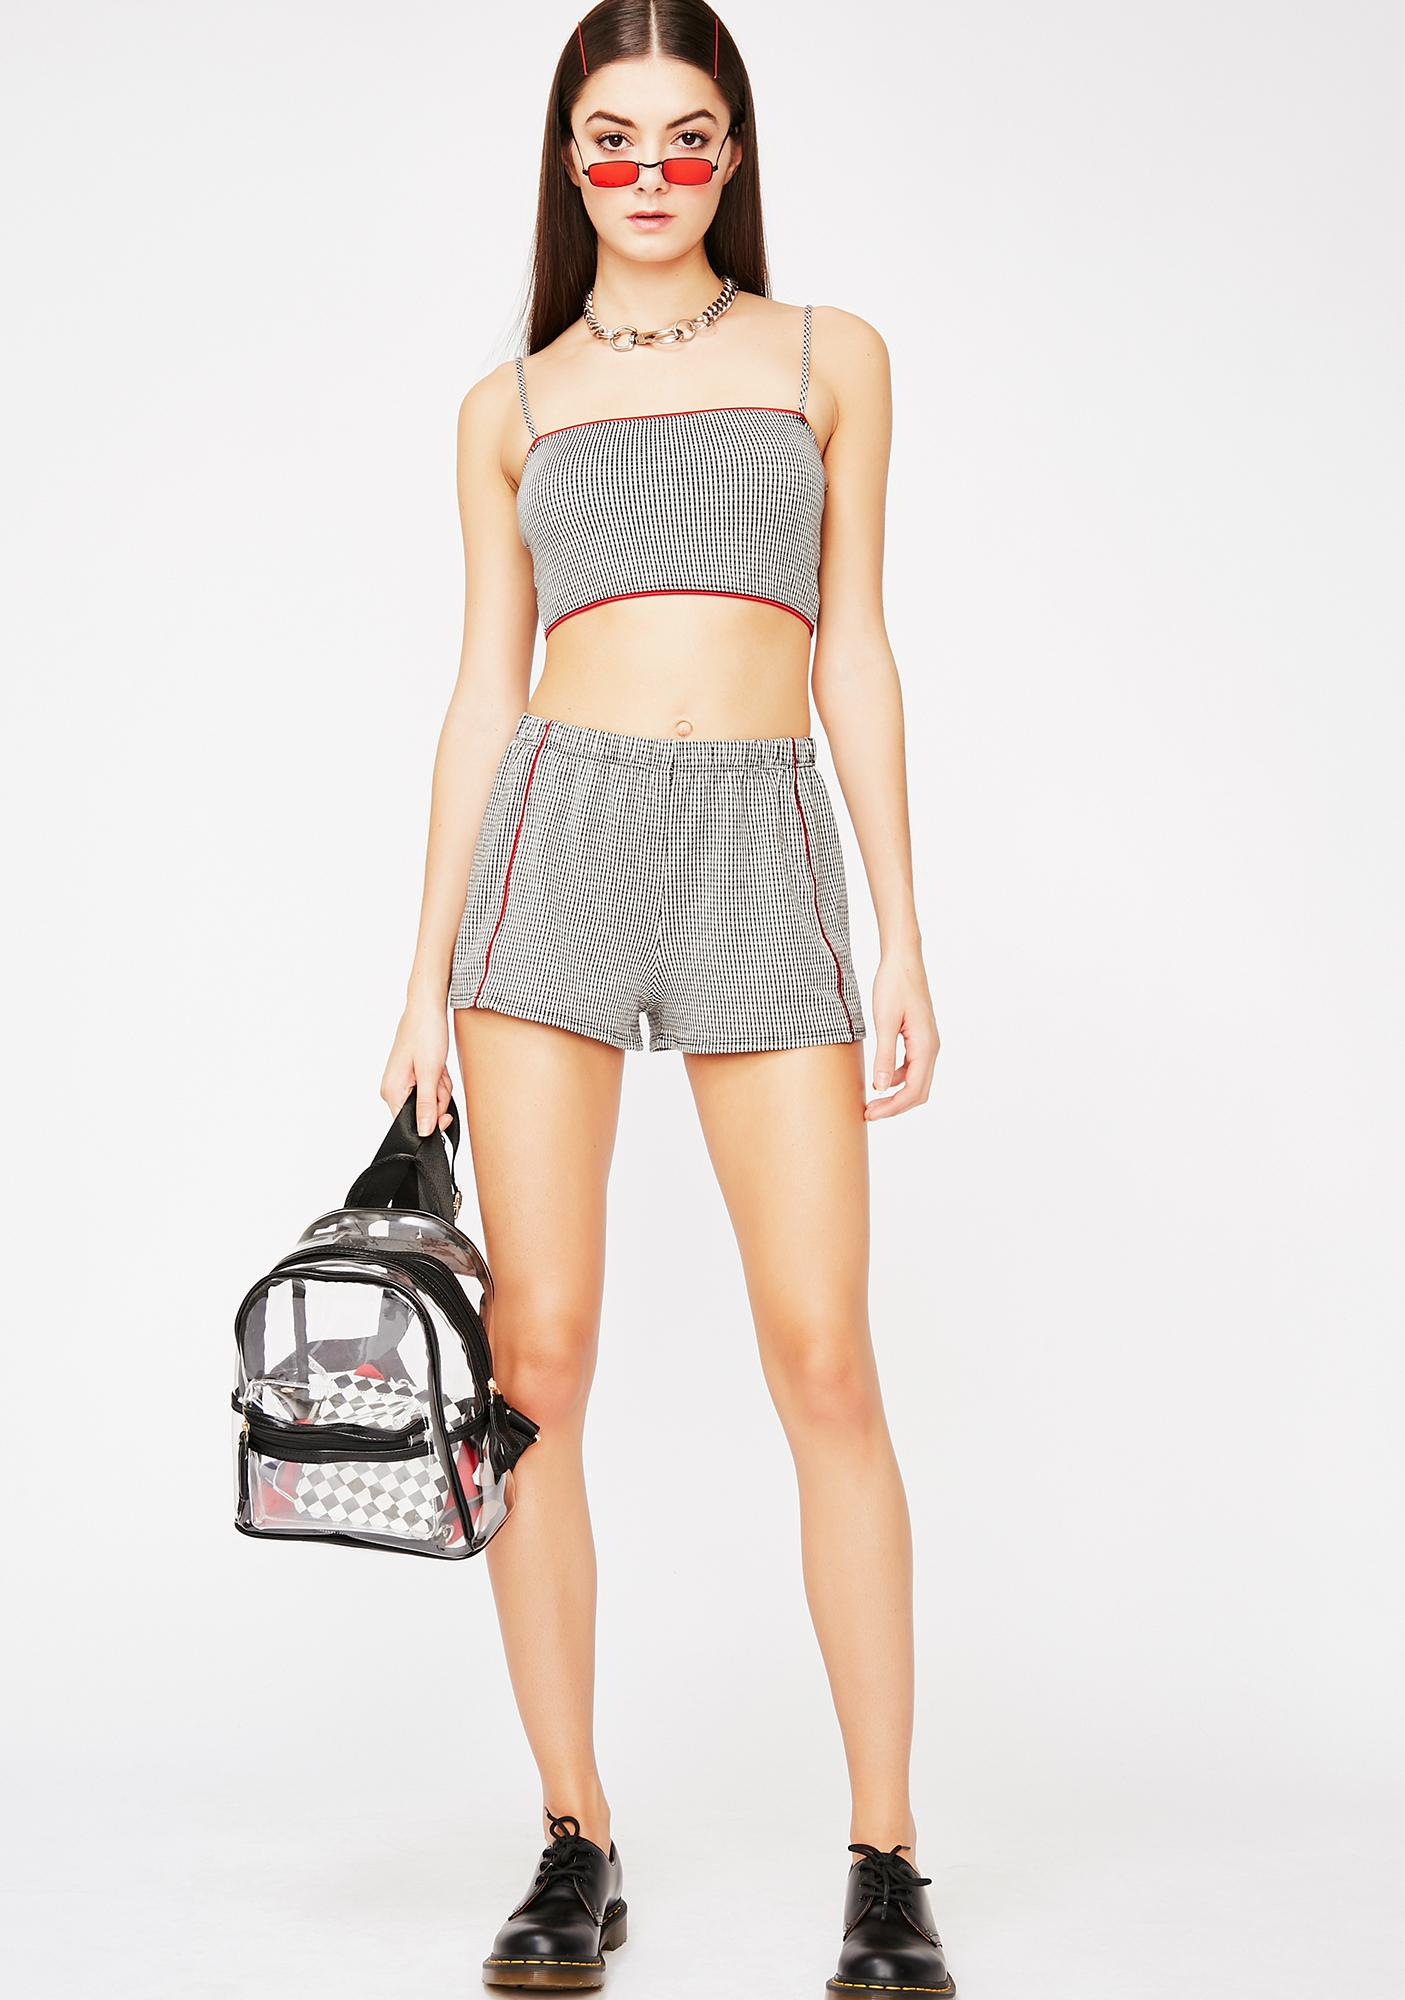 Too Reckless Gingham Set